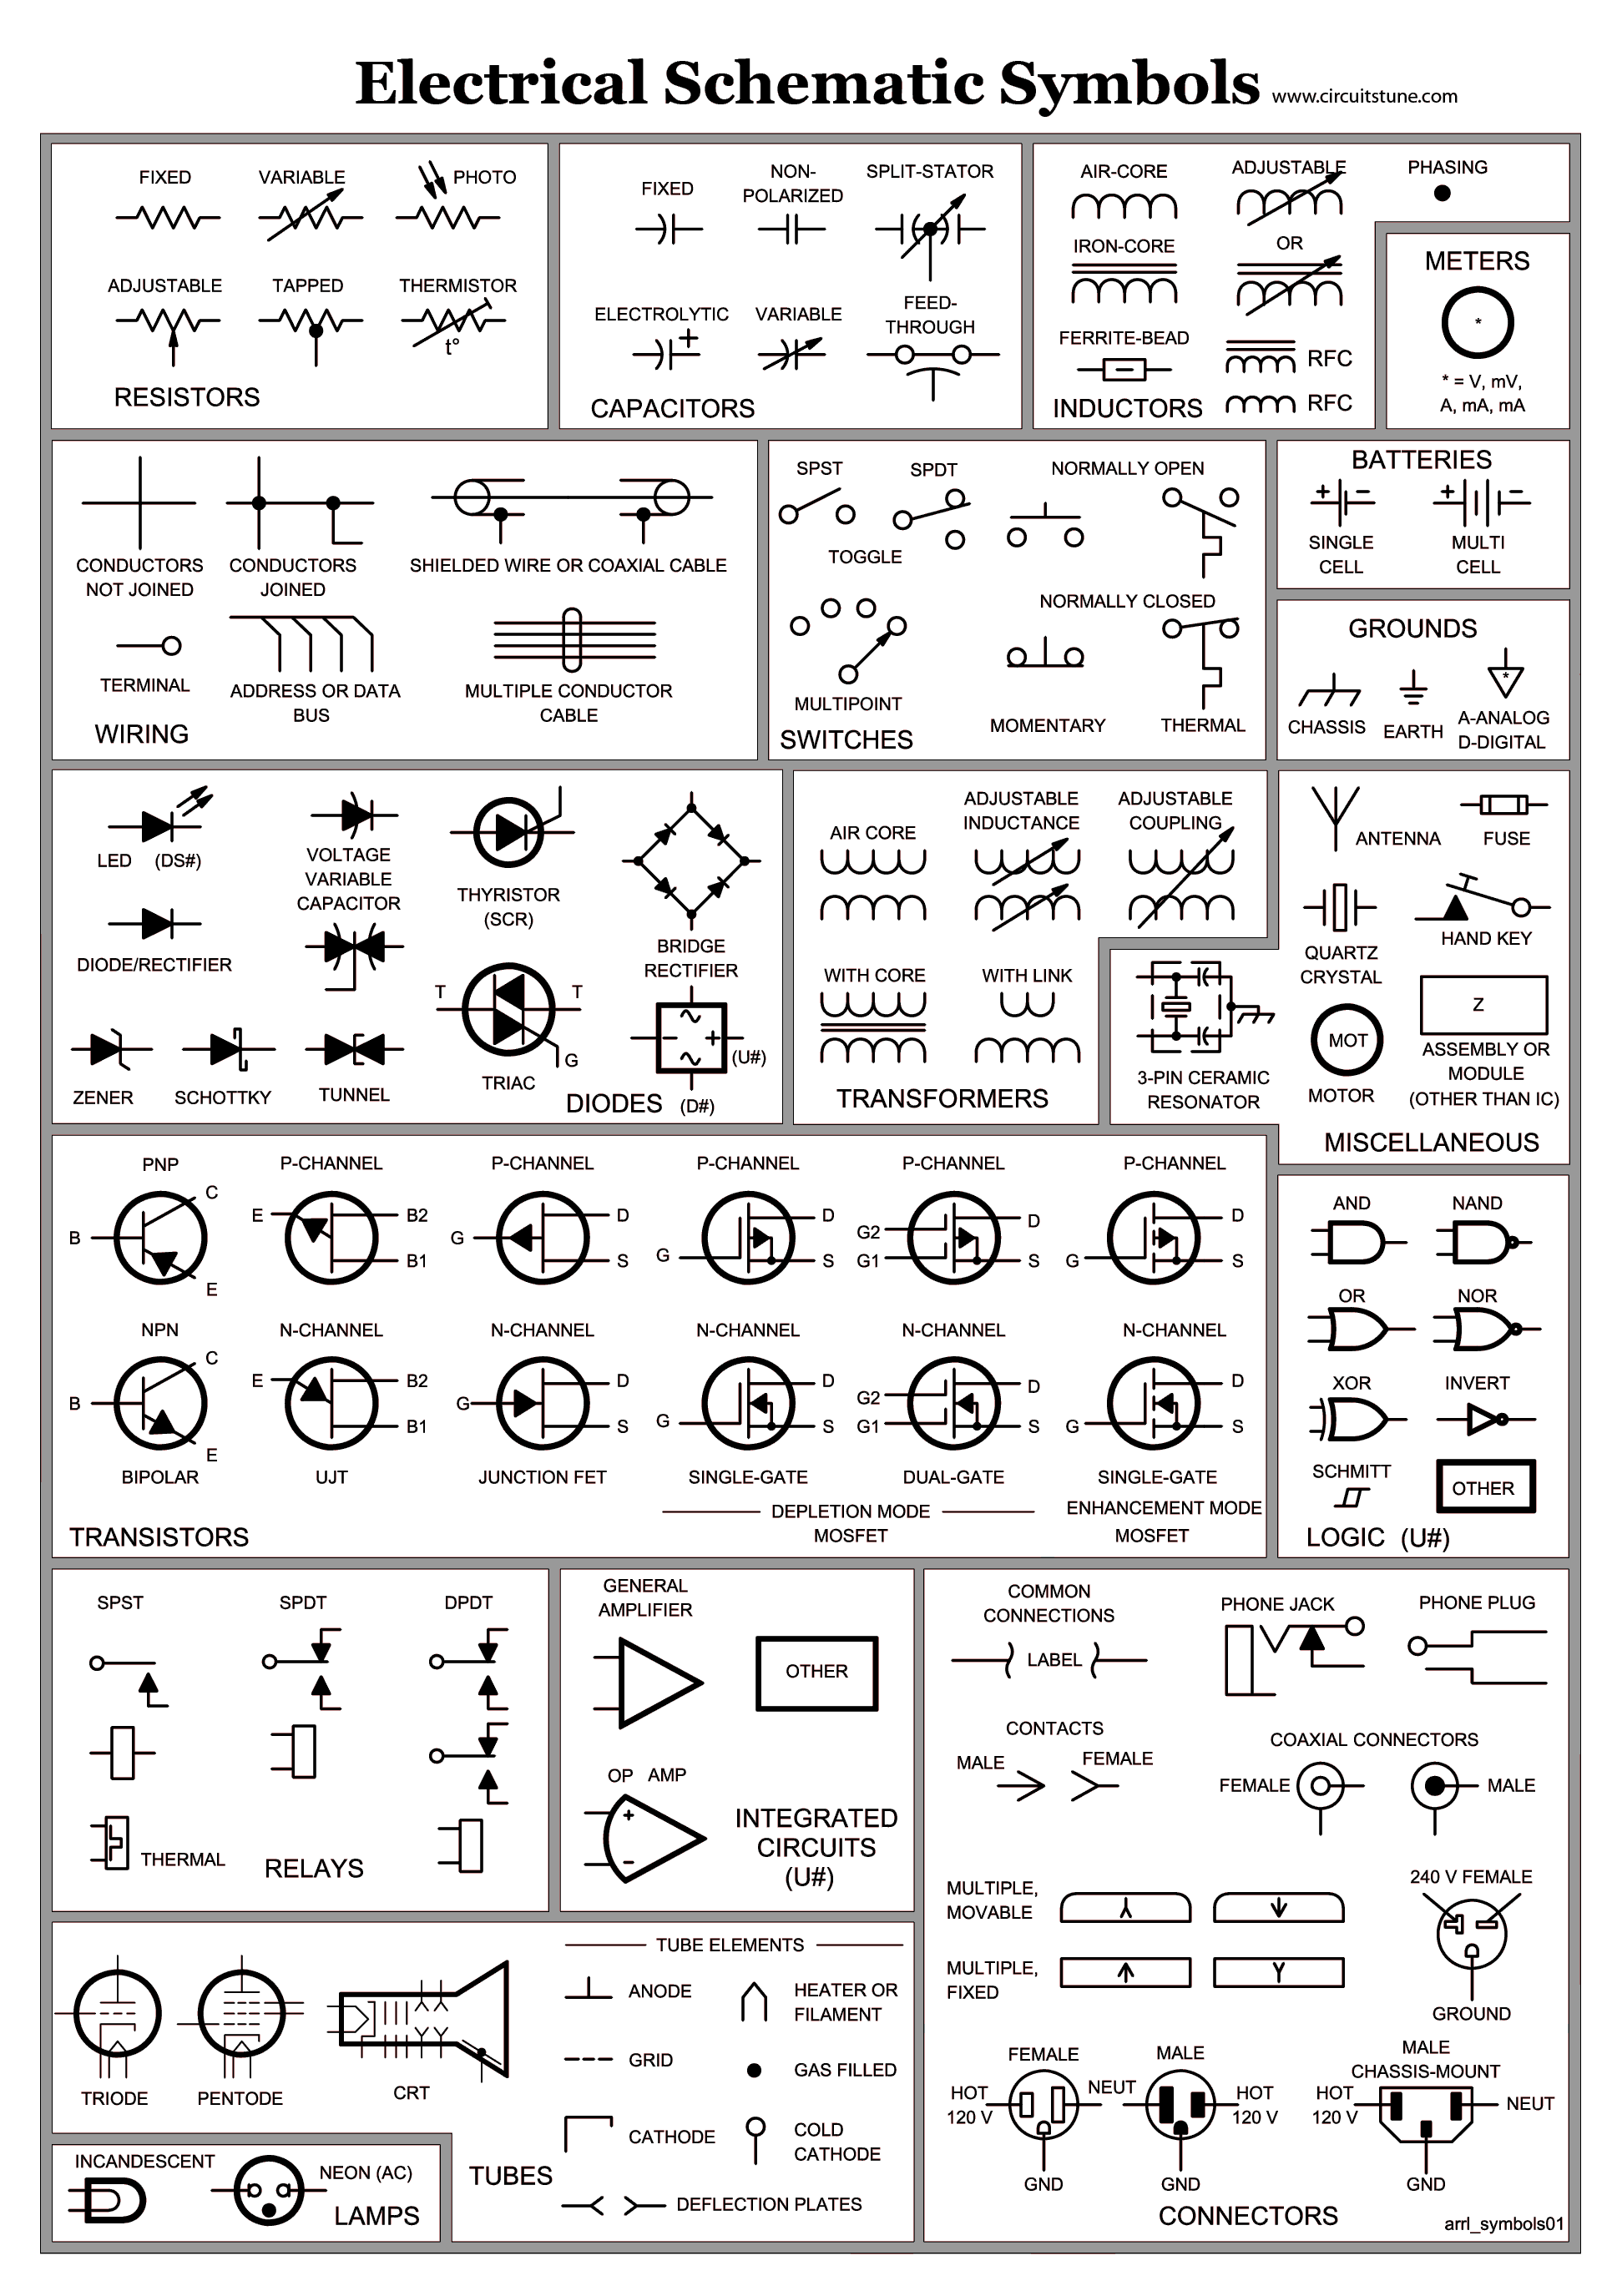 hight resolution of electrical schematic symbols skinsquiggles electrical wiringelectrical schematic symbols